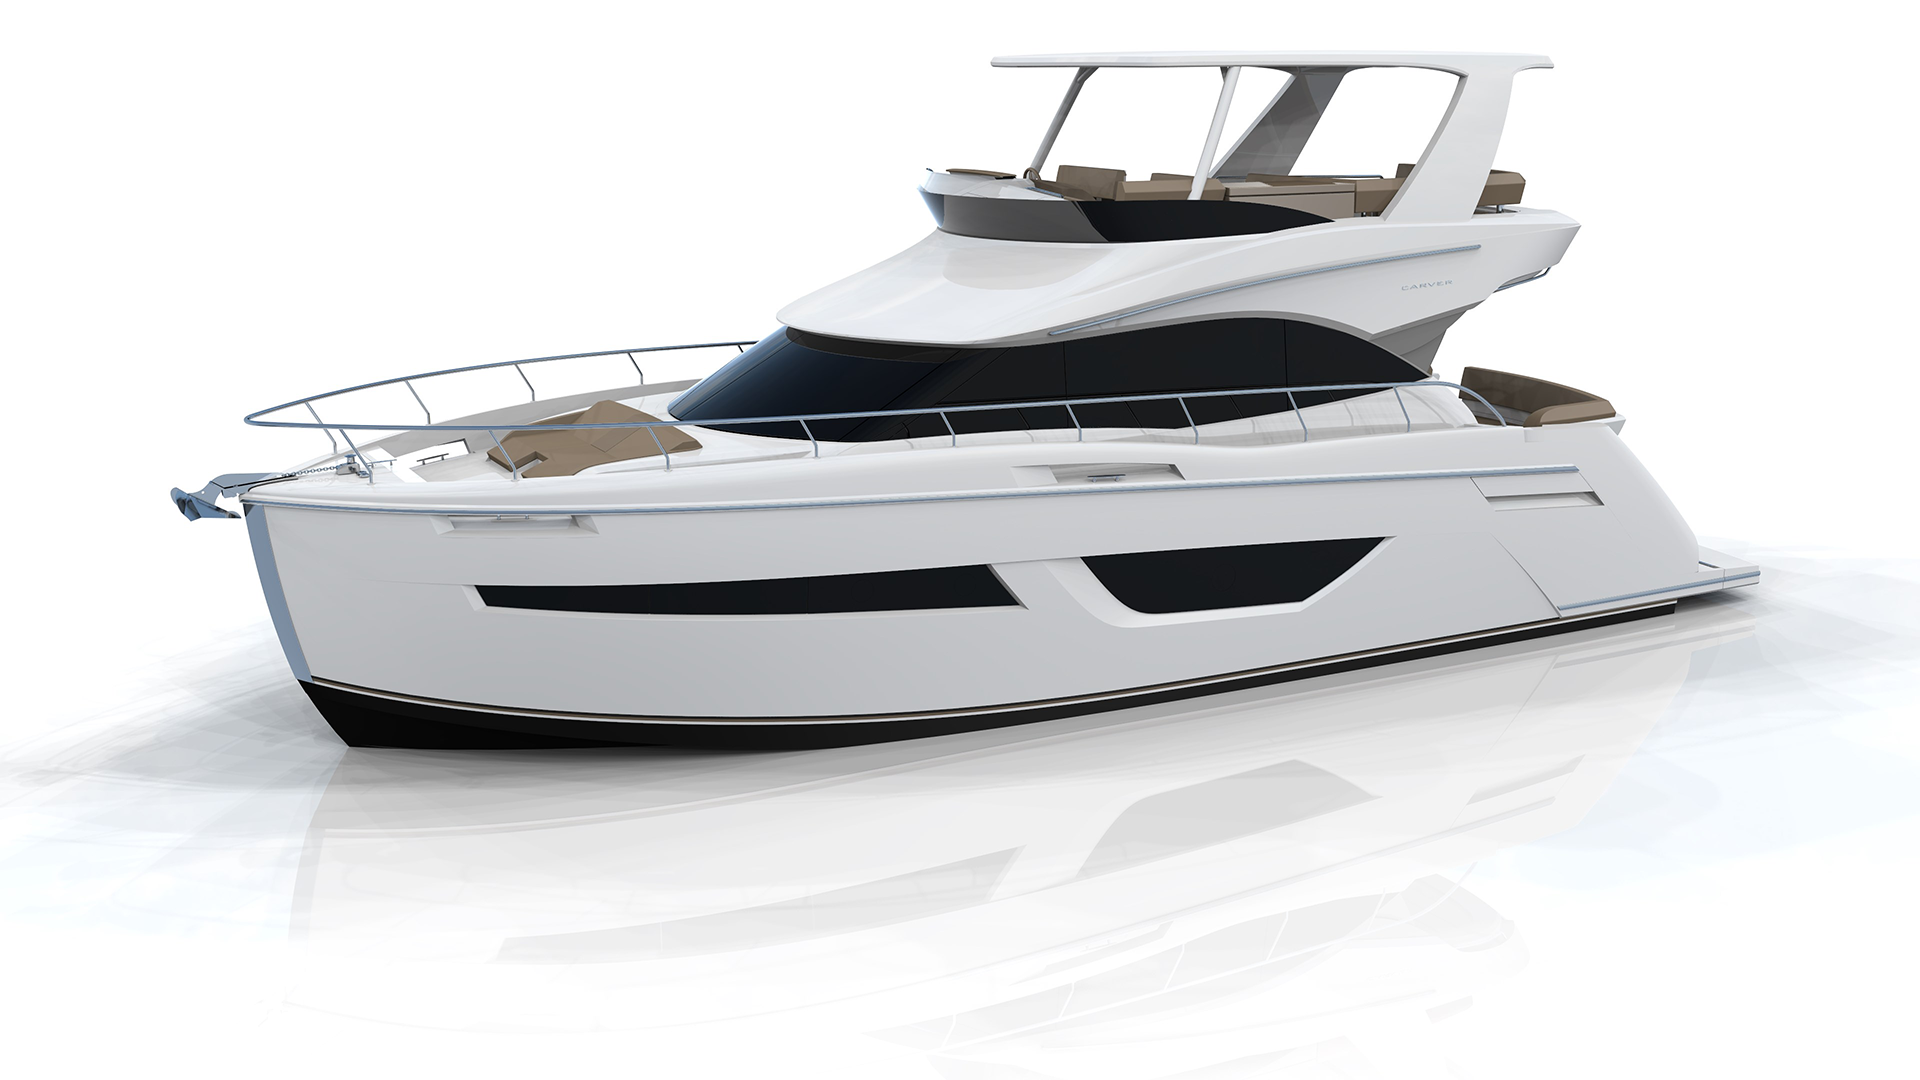 Luxury Yacht Png - Luxury Yacht Png Hdpng.com 1920, Transparent background PNG HD thumbnail